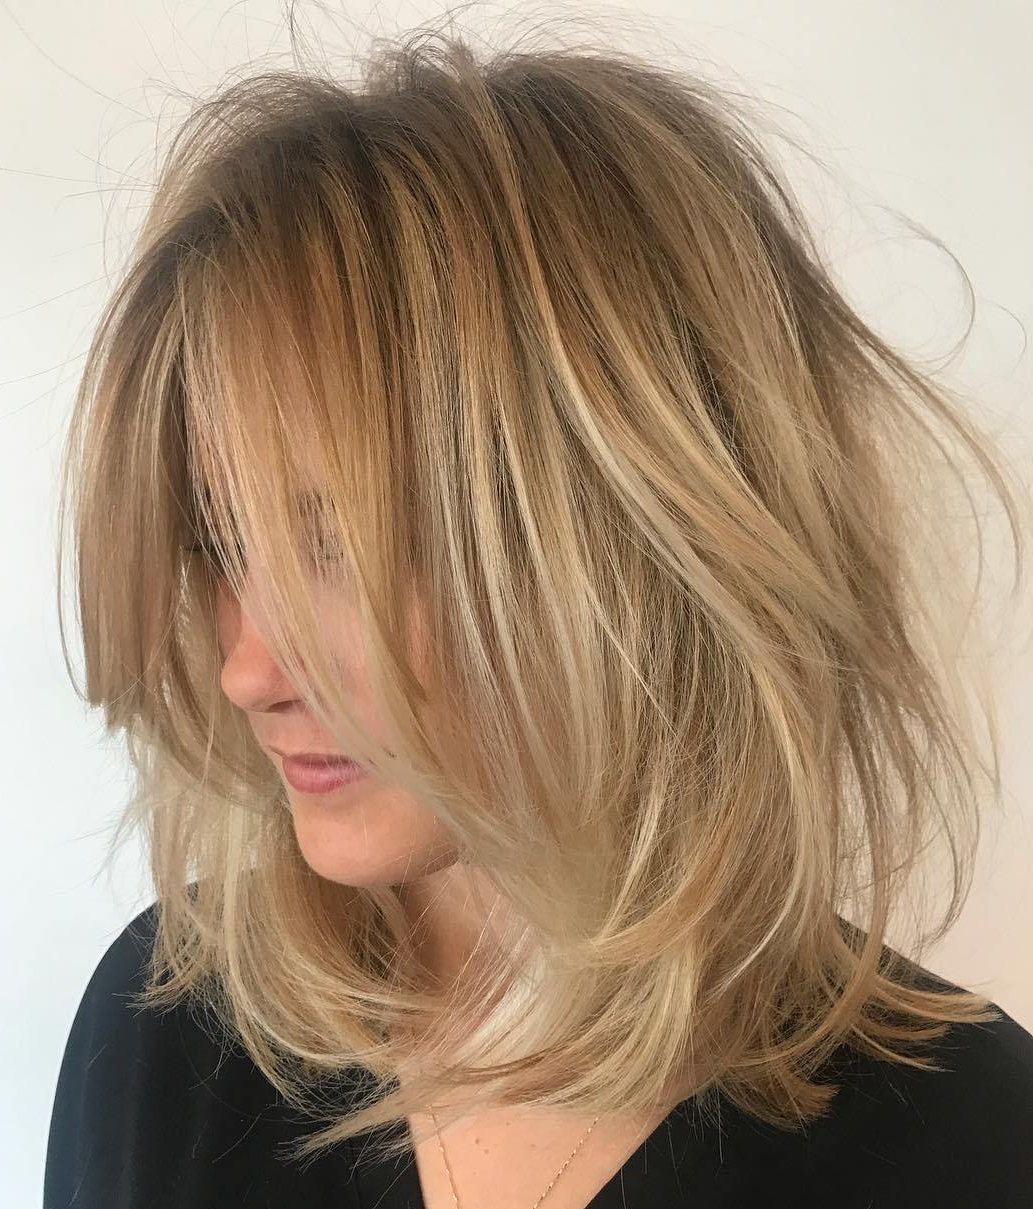 Well Known Medium Haircuts For Blondes With Thin Hair Pertaining To Hair Cuts : Layered Cuts For Fine Hair Over Haircuts Medium With (View 19 of 20)